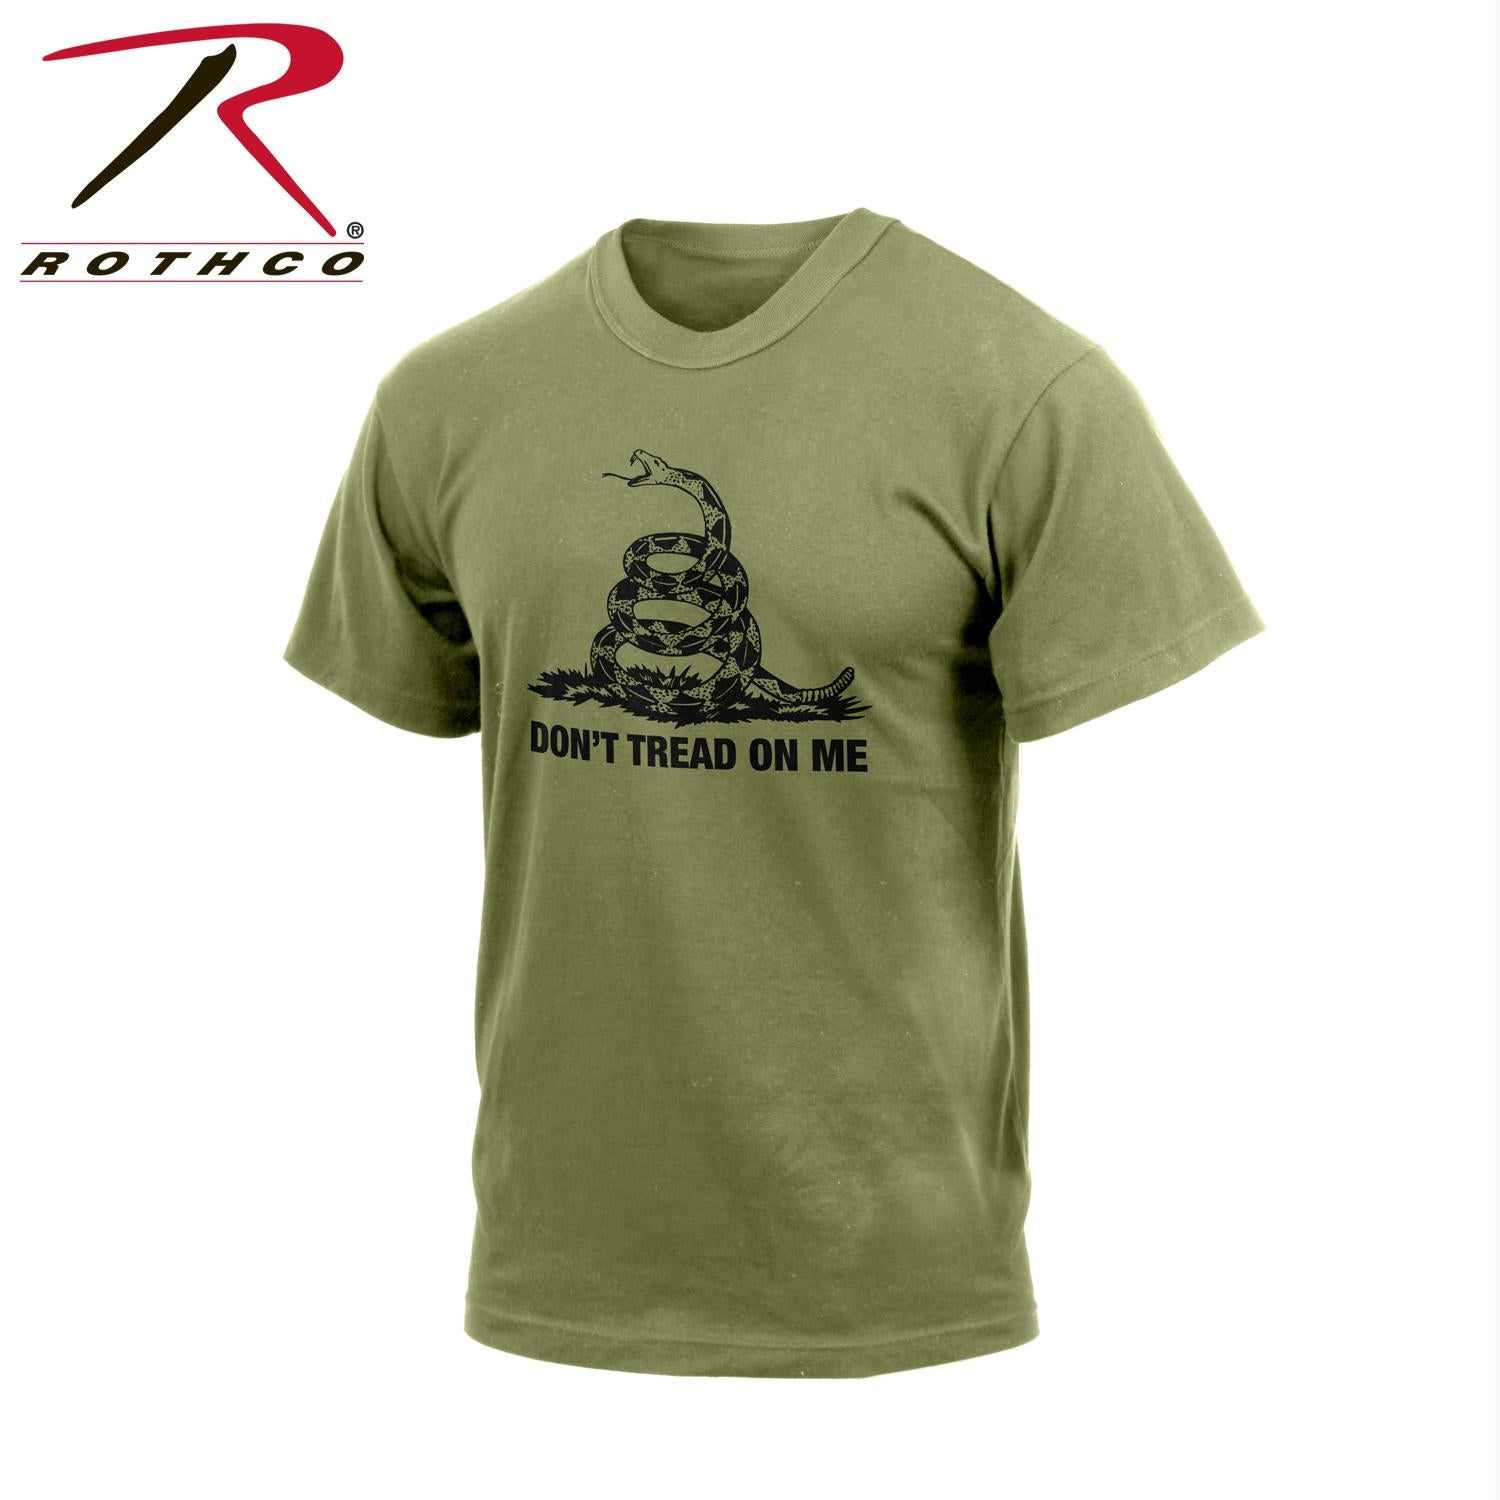 Rothco Don't Tread On Me Vintage T-Shirt - Olive Drab / XL